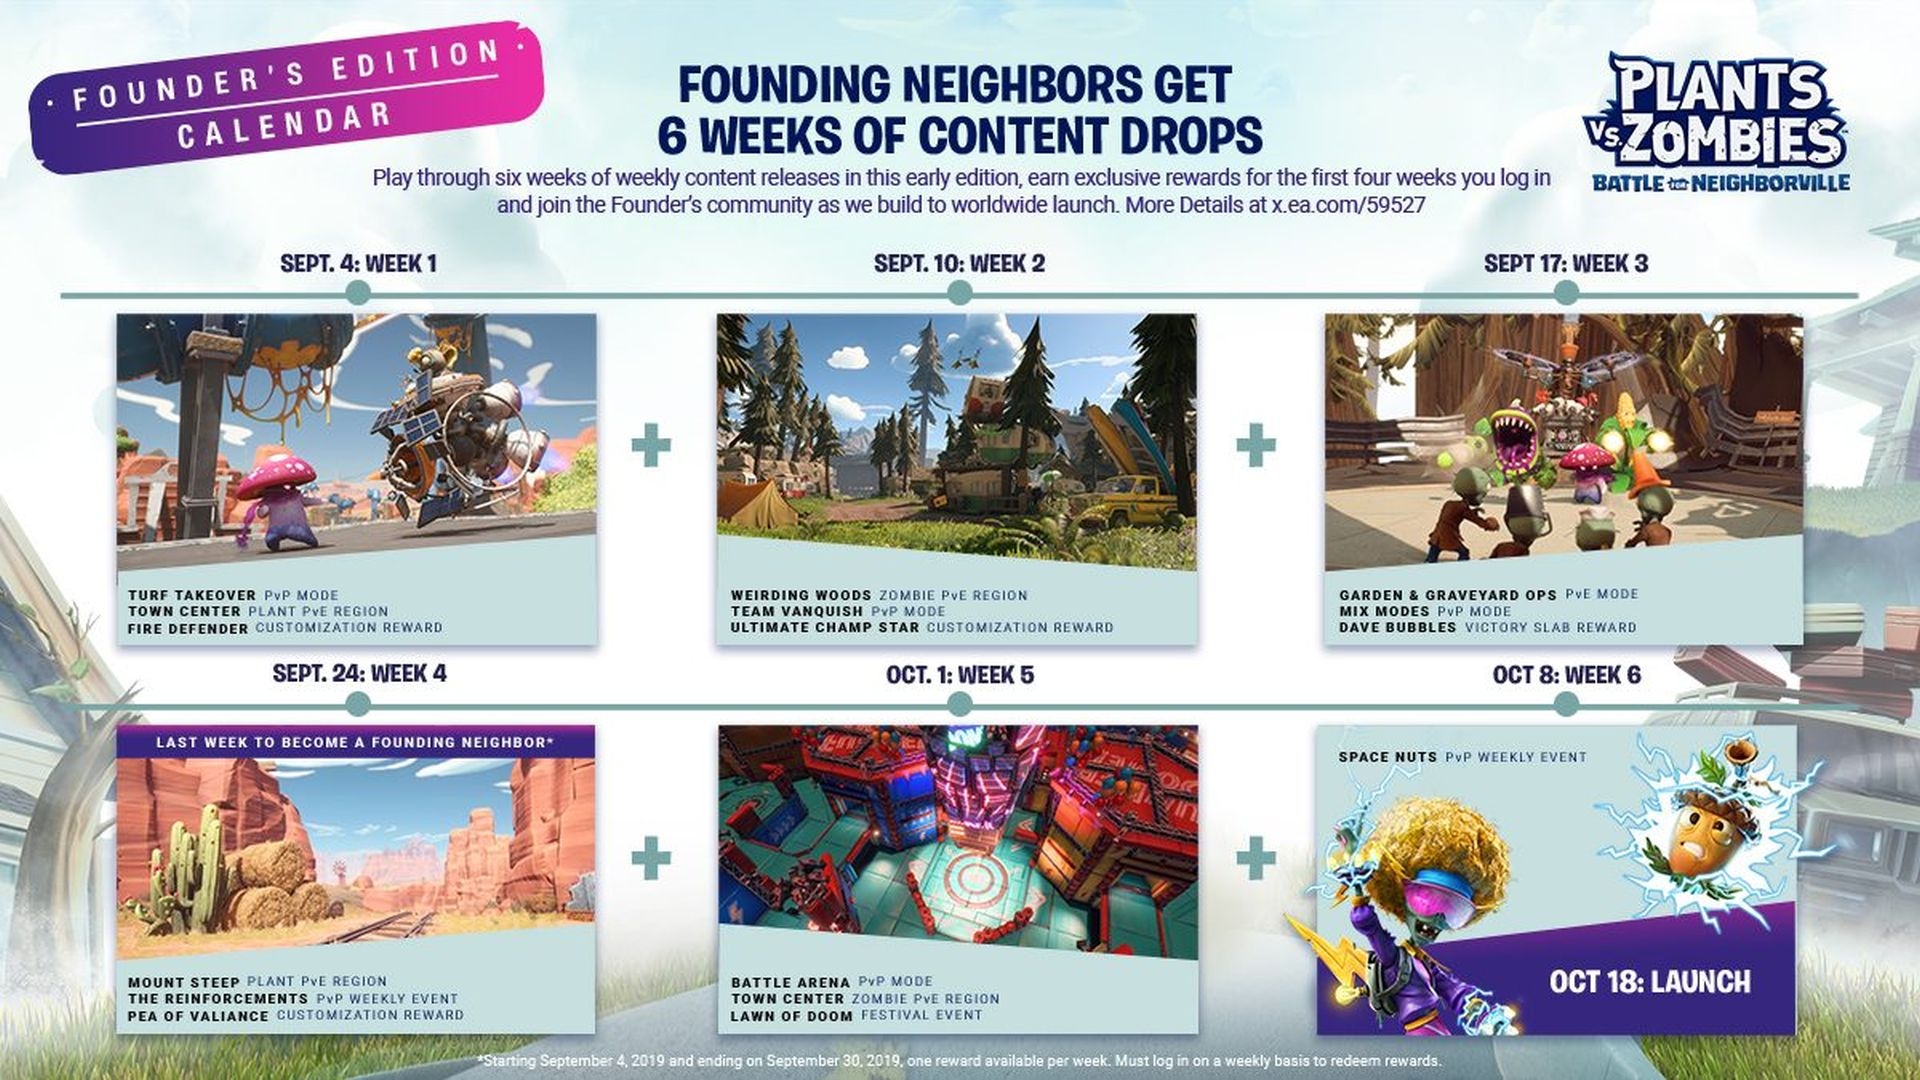 Plants vs Zombies Battle for Neighborville_Founders Edition